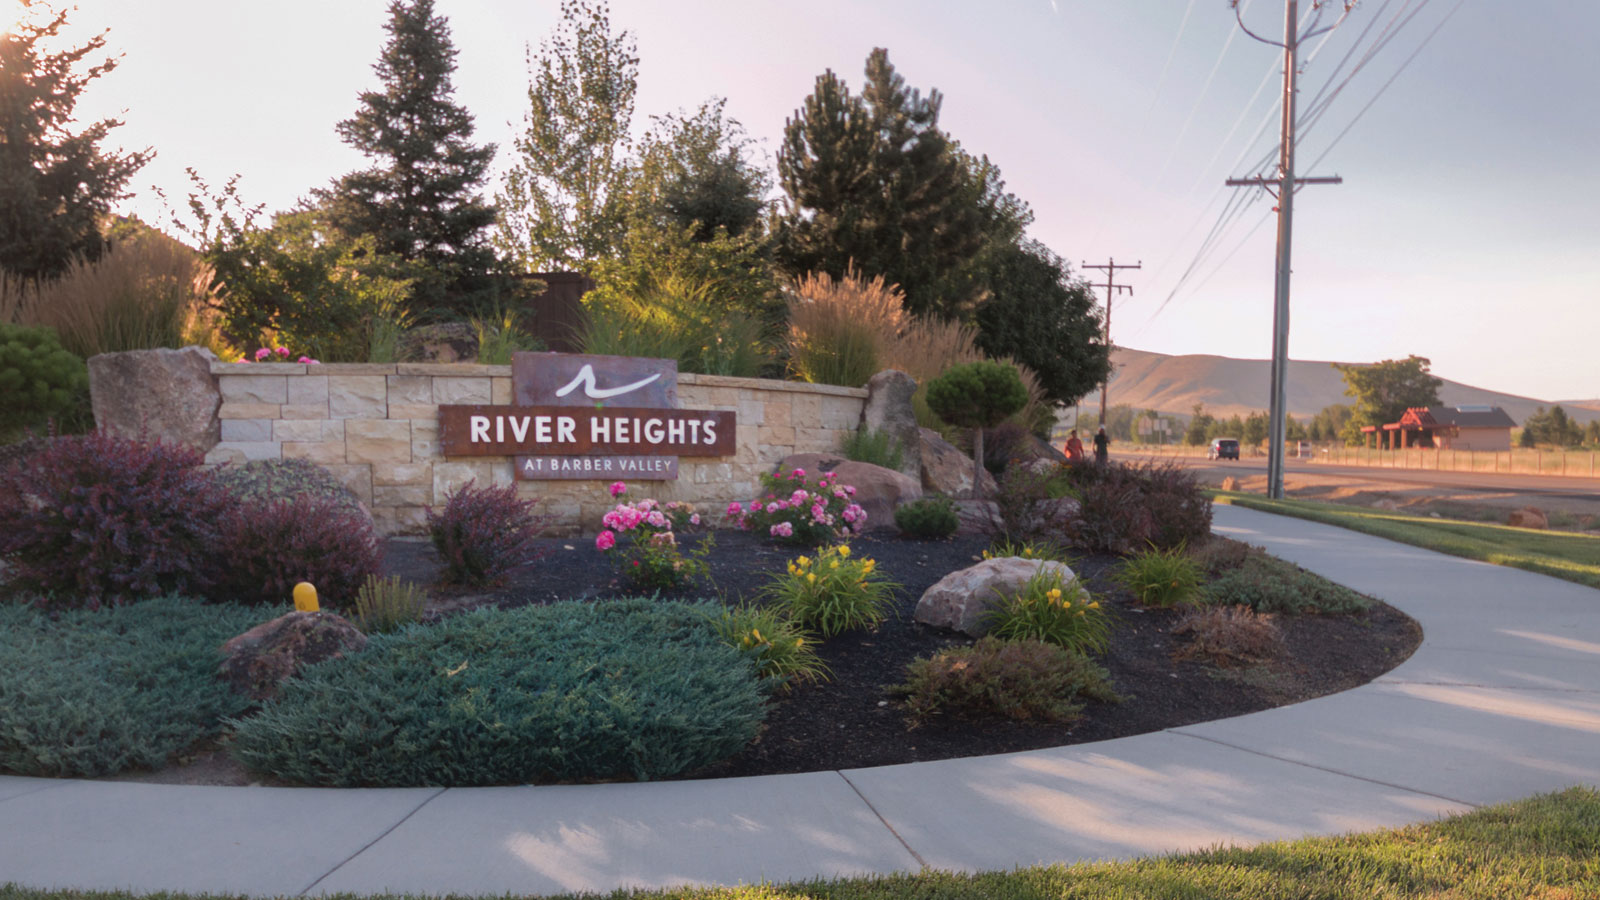 River Heights subdivision in Boise Idaho